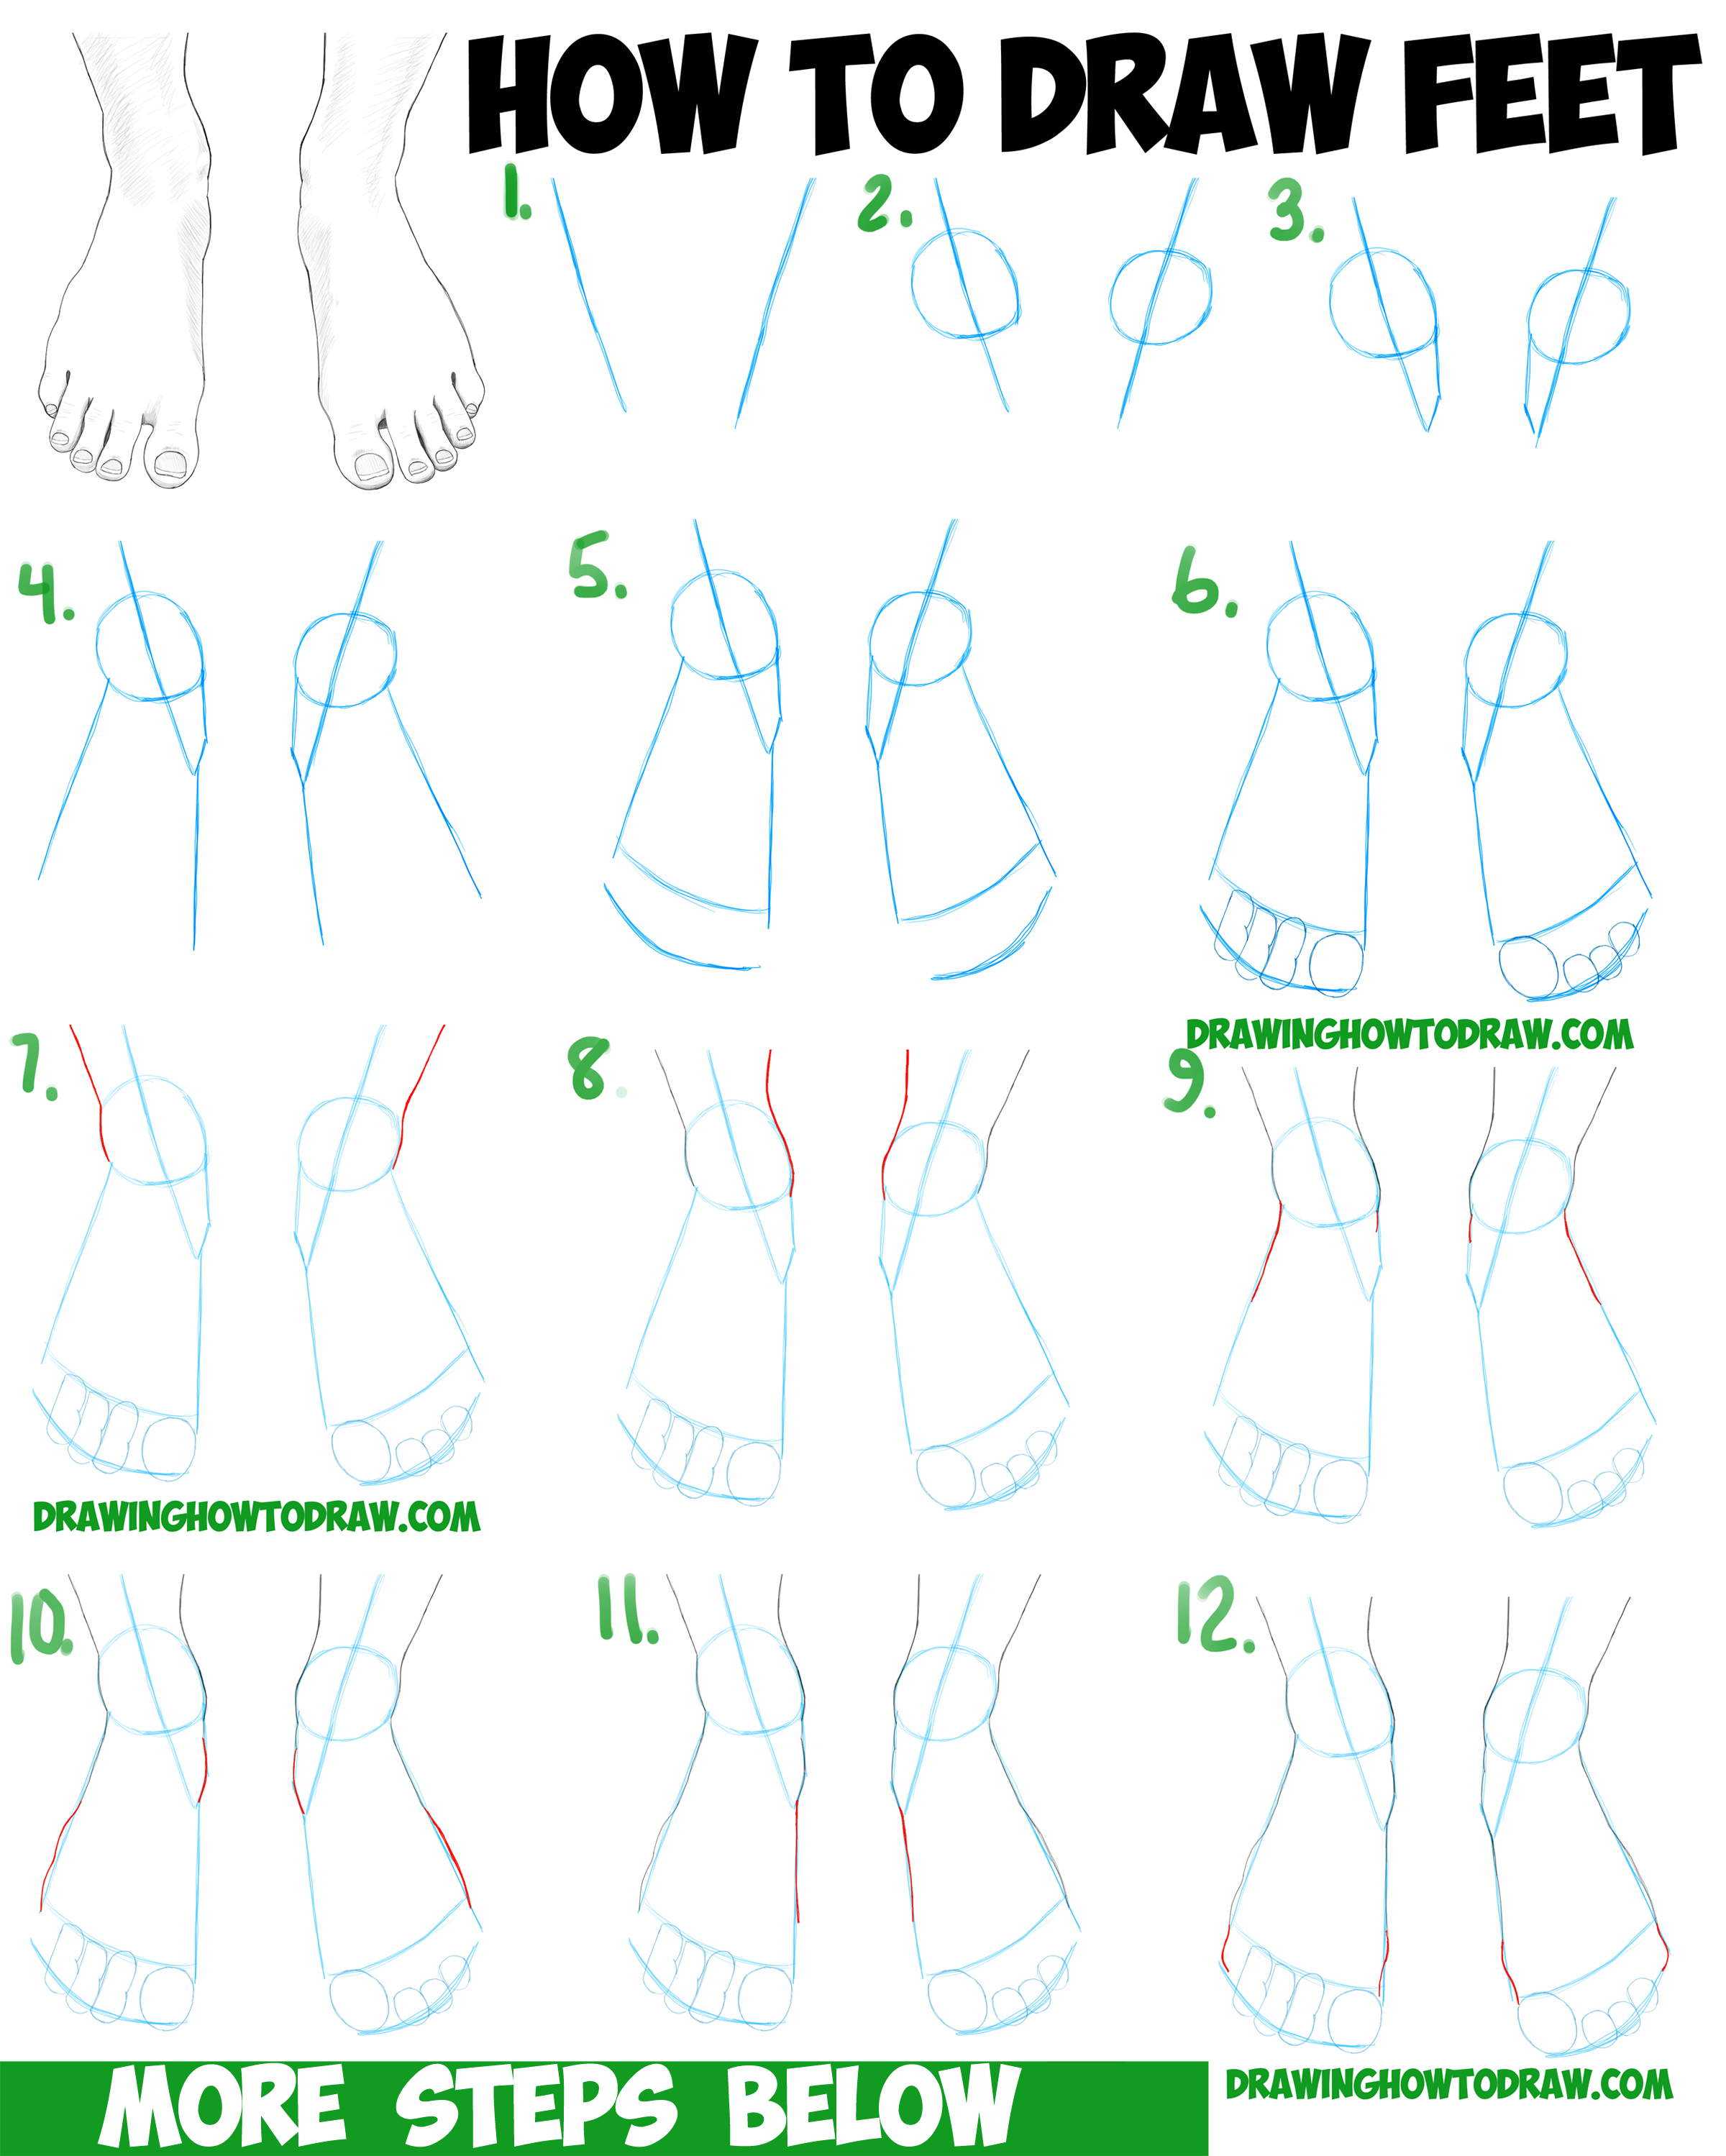 How to draw feet the human foot with easy step by step for Drawing ideas for beginners step by step